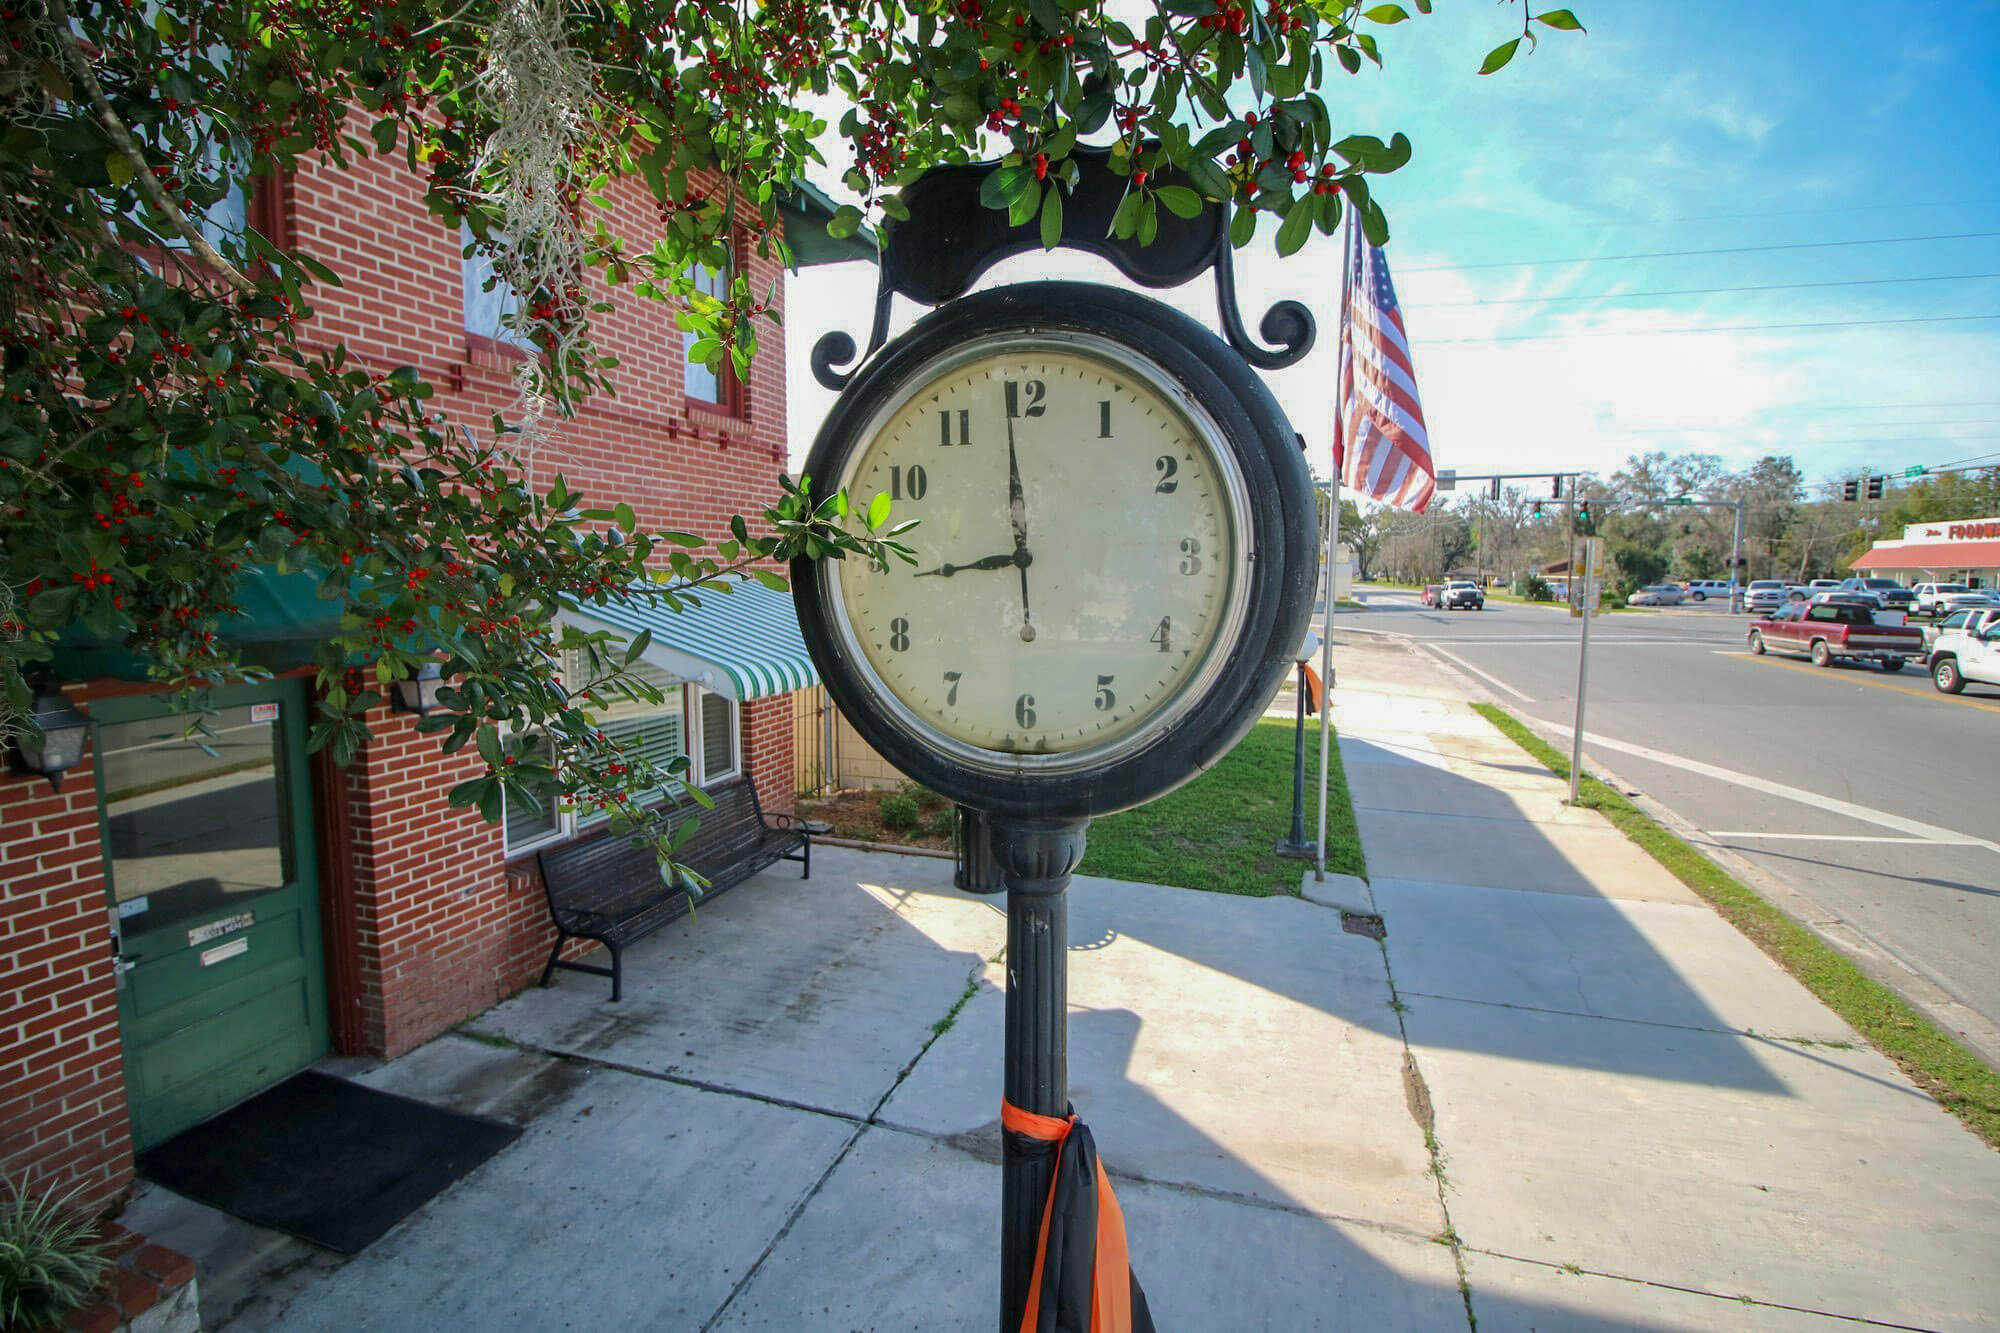 Trenton clock by city hall with street in the background